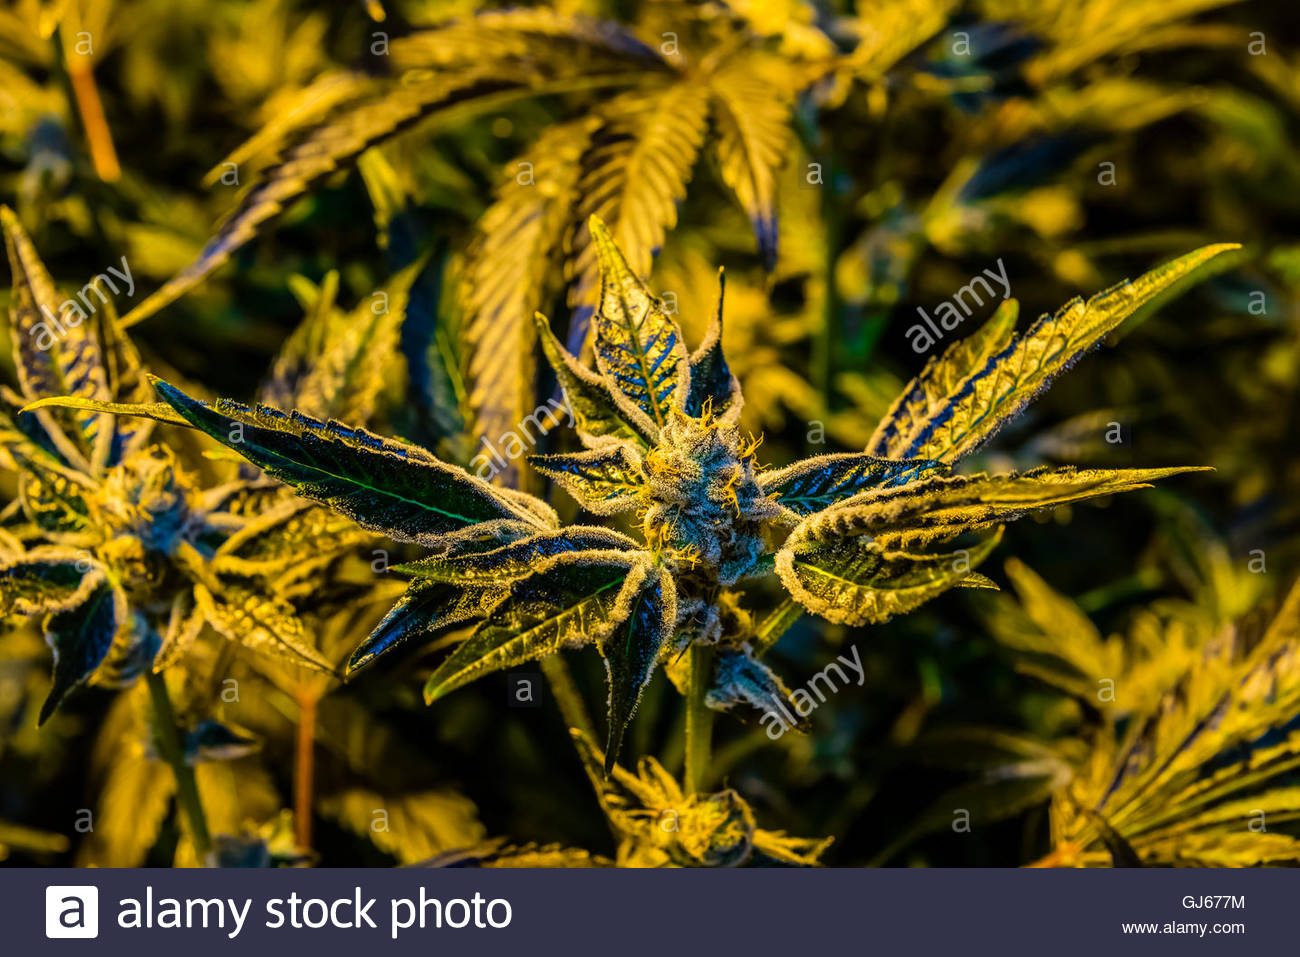 Girl Scout Cookies (GSC) a hybrid of OK Kush and Durban Poison (indica), Marijuana flowering Grow room, Sticky Buds, - Stock Image